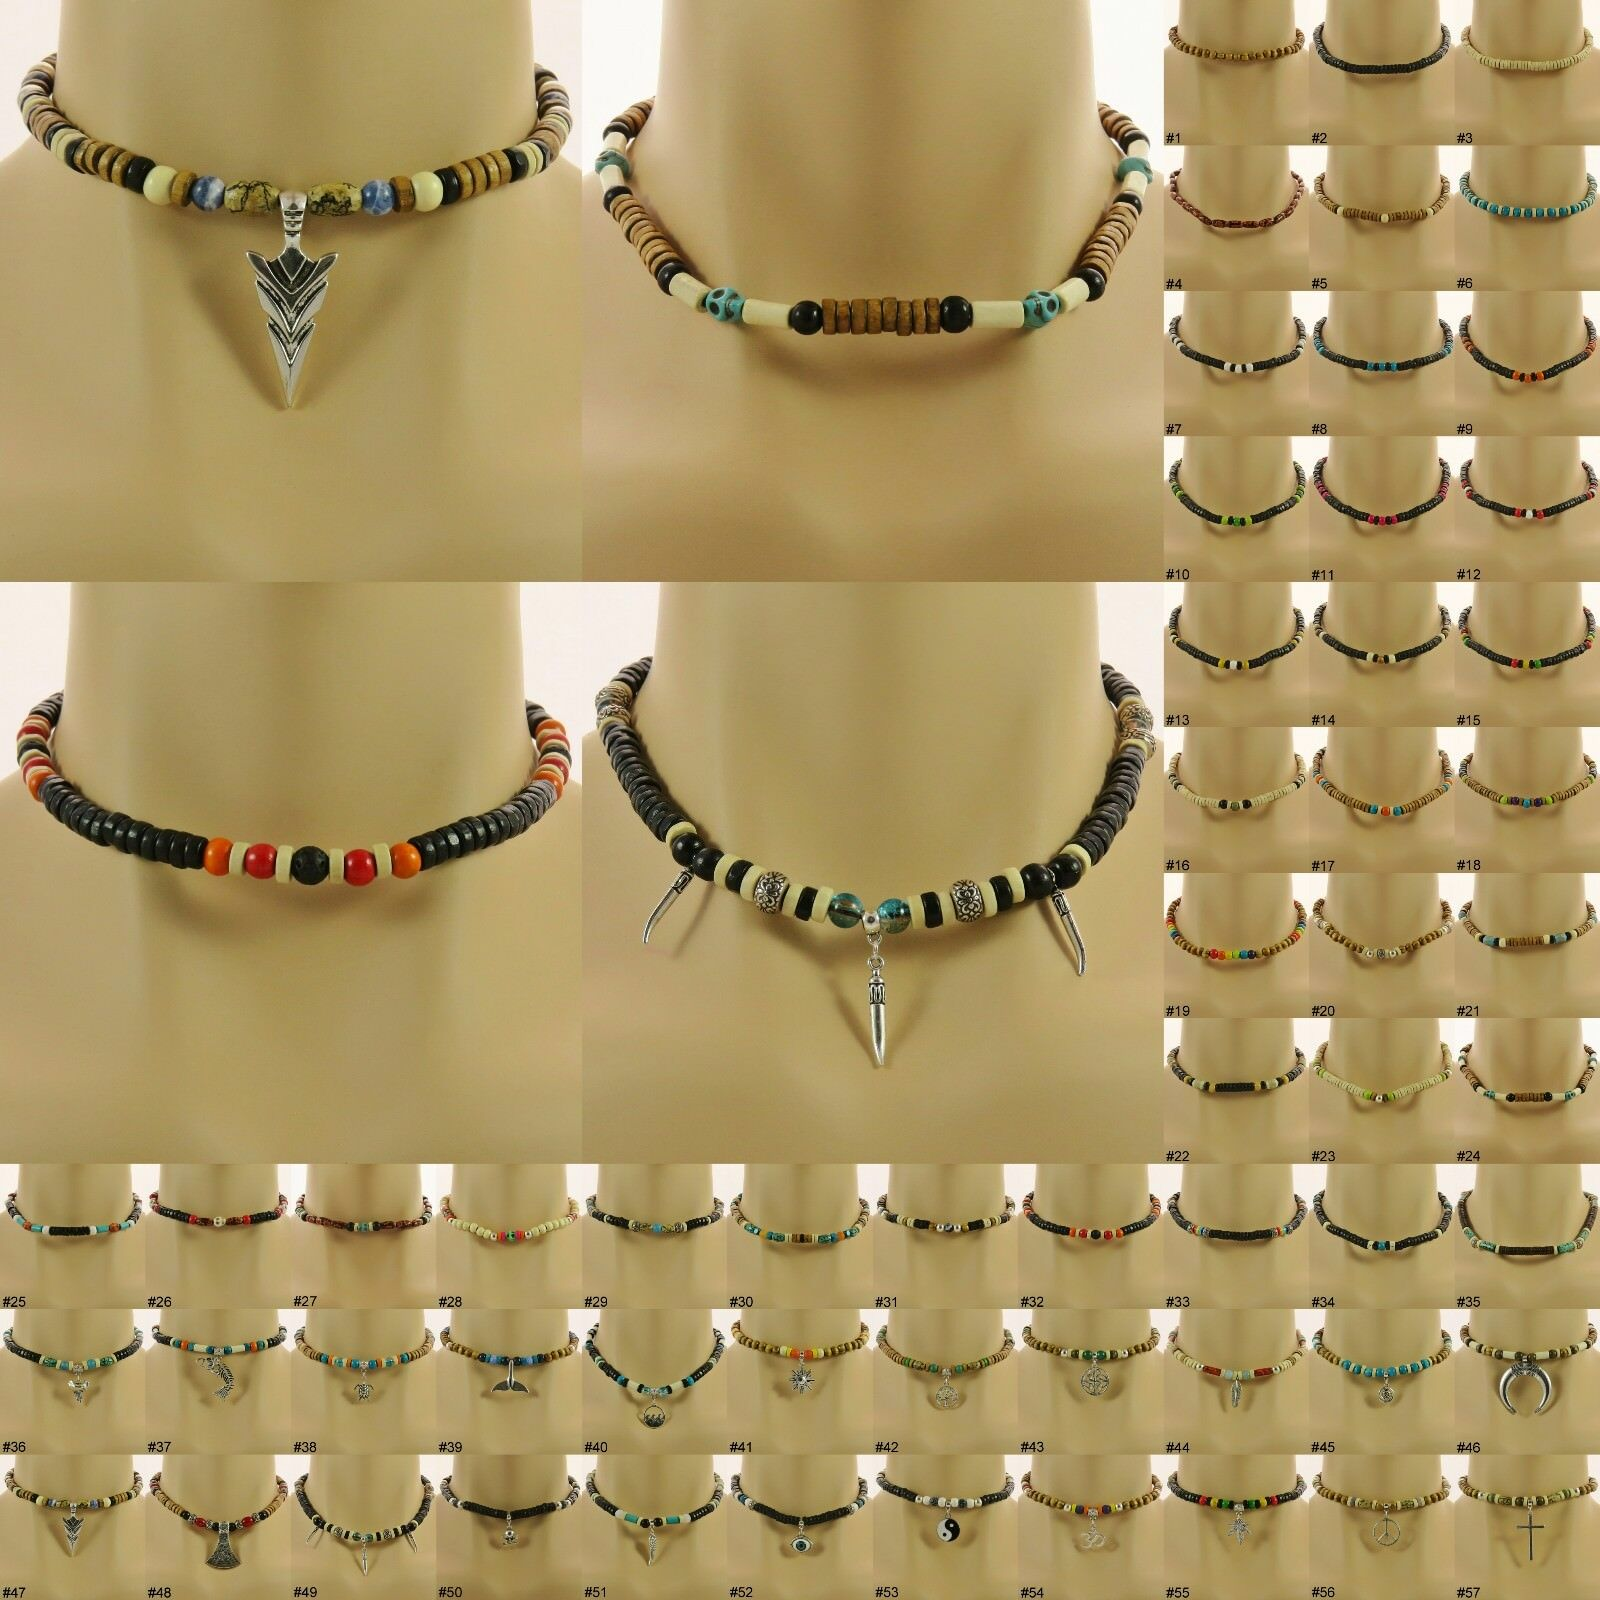 Jewellery - Surfer Style Bead Necklace boho beaded choker mens ladies womens boys jewellery